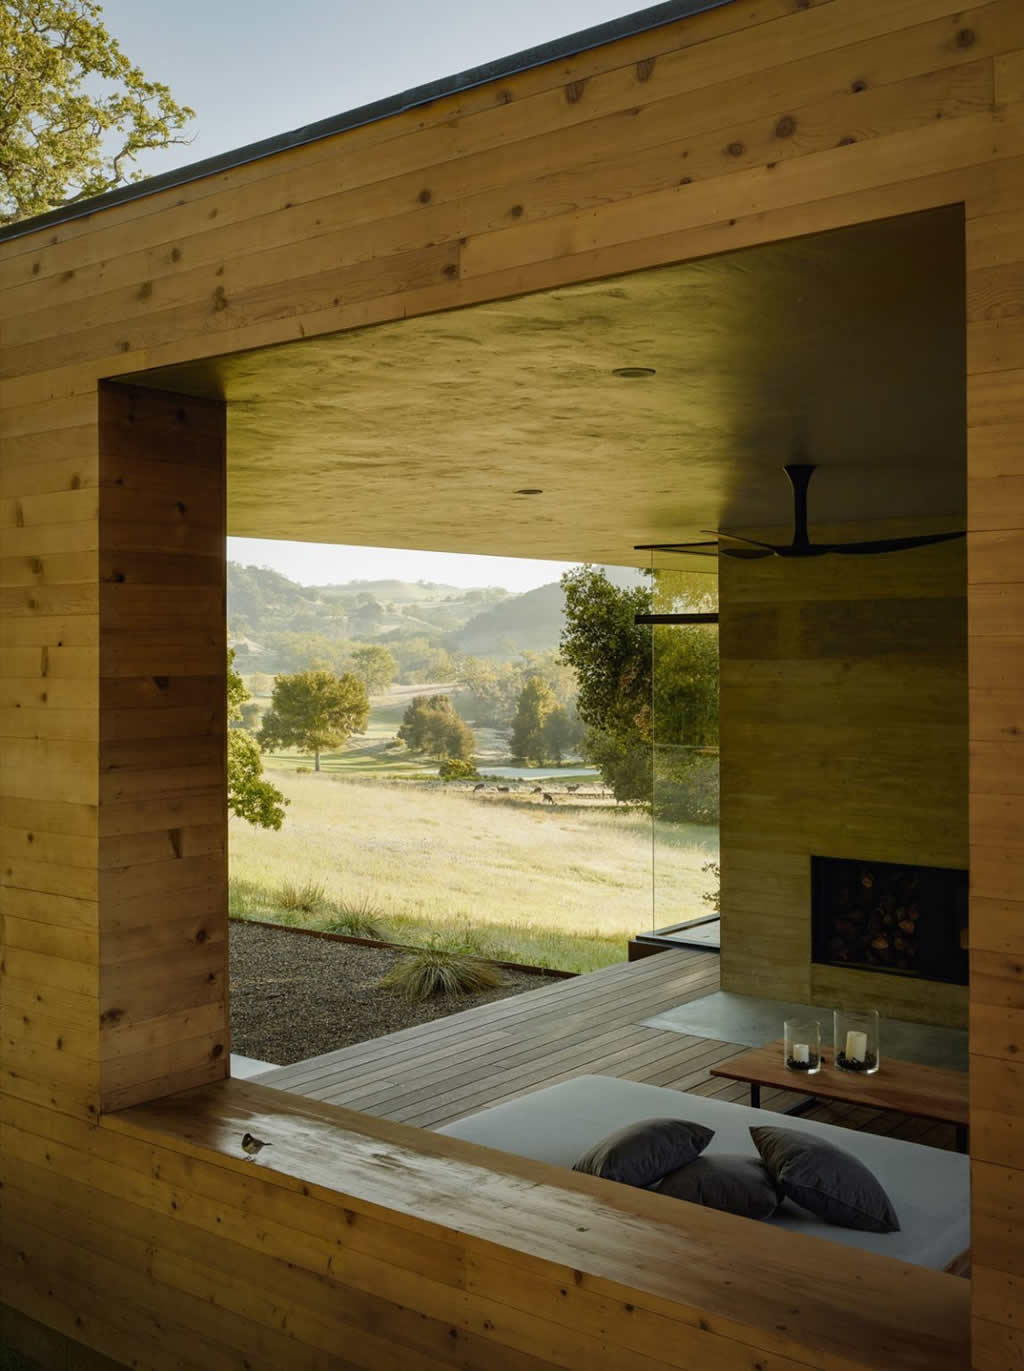 Residence In Carmel Valley By Sagan Piechota Architecture (18)